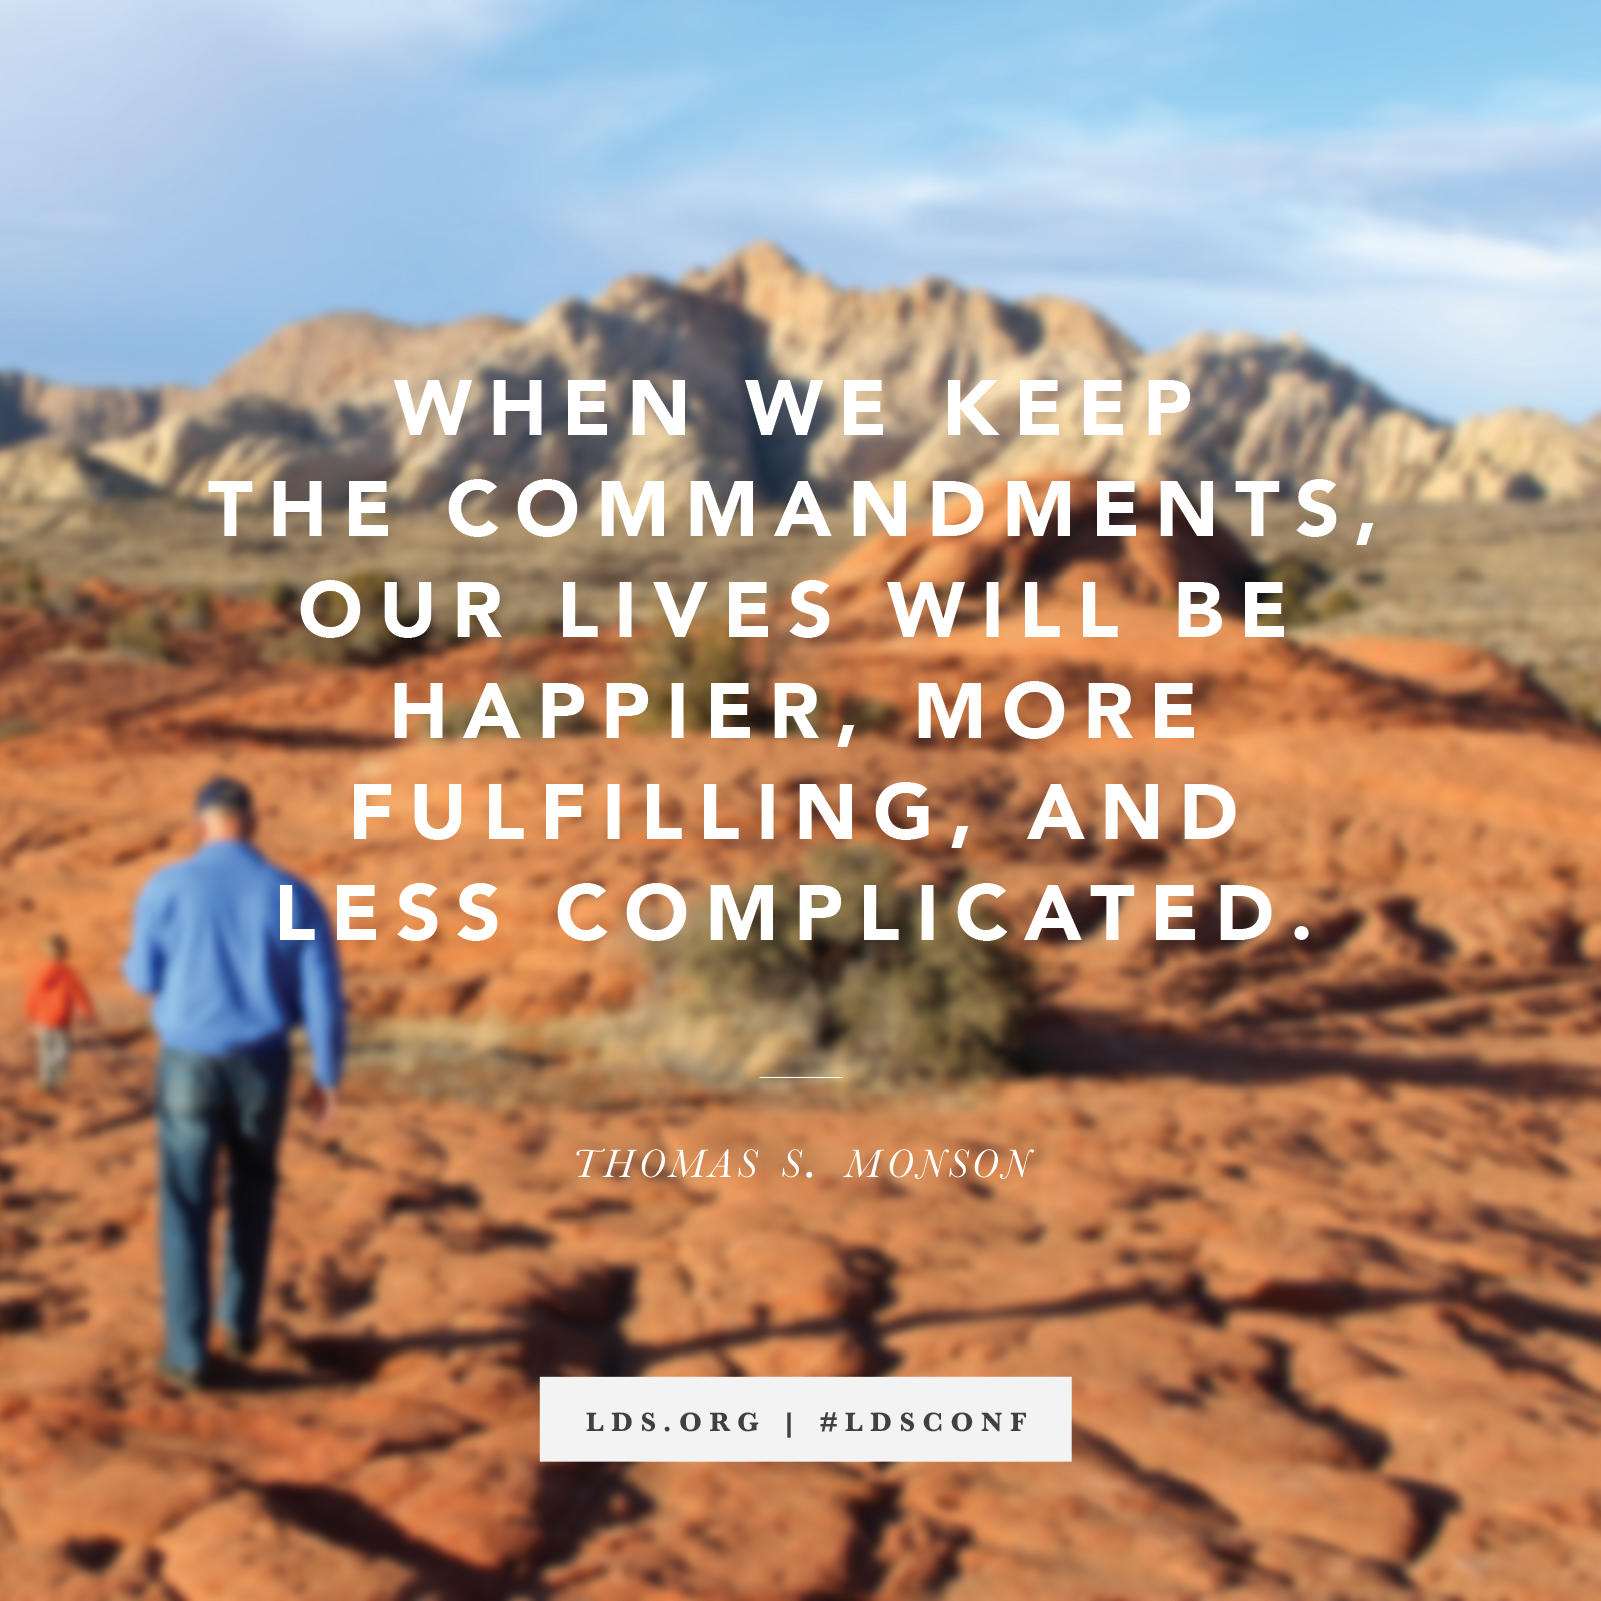 """""""When we keep the commandments, our lives will be happier, more fulfilling, and less complicated."""" —President Thomas S. Monson, """"Keep the Commandments"""""""